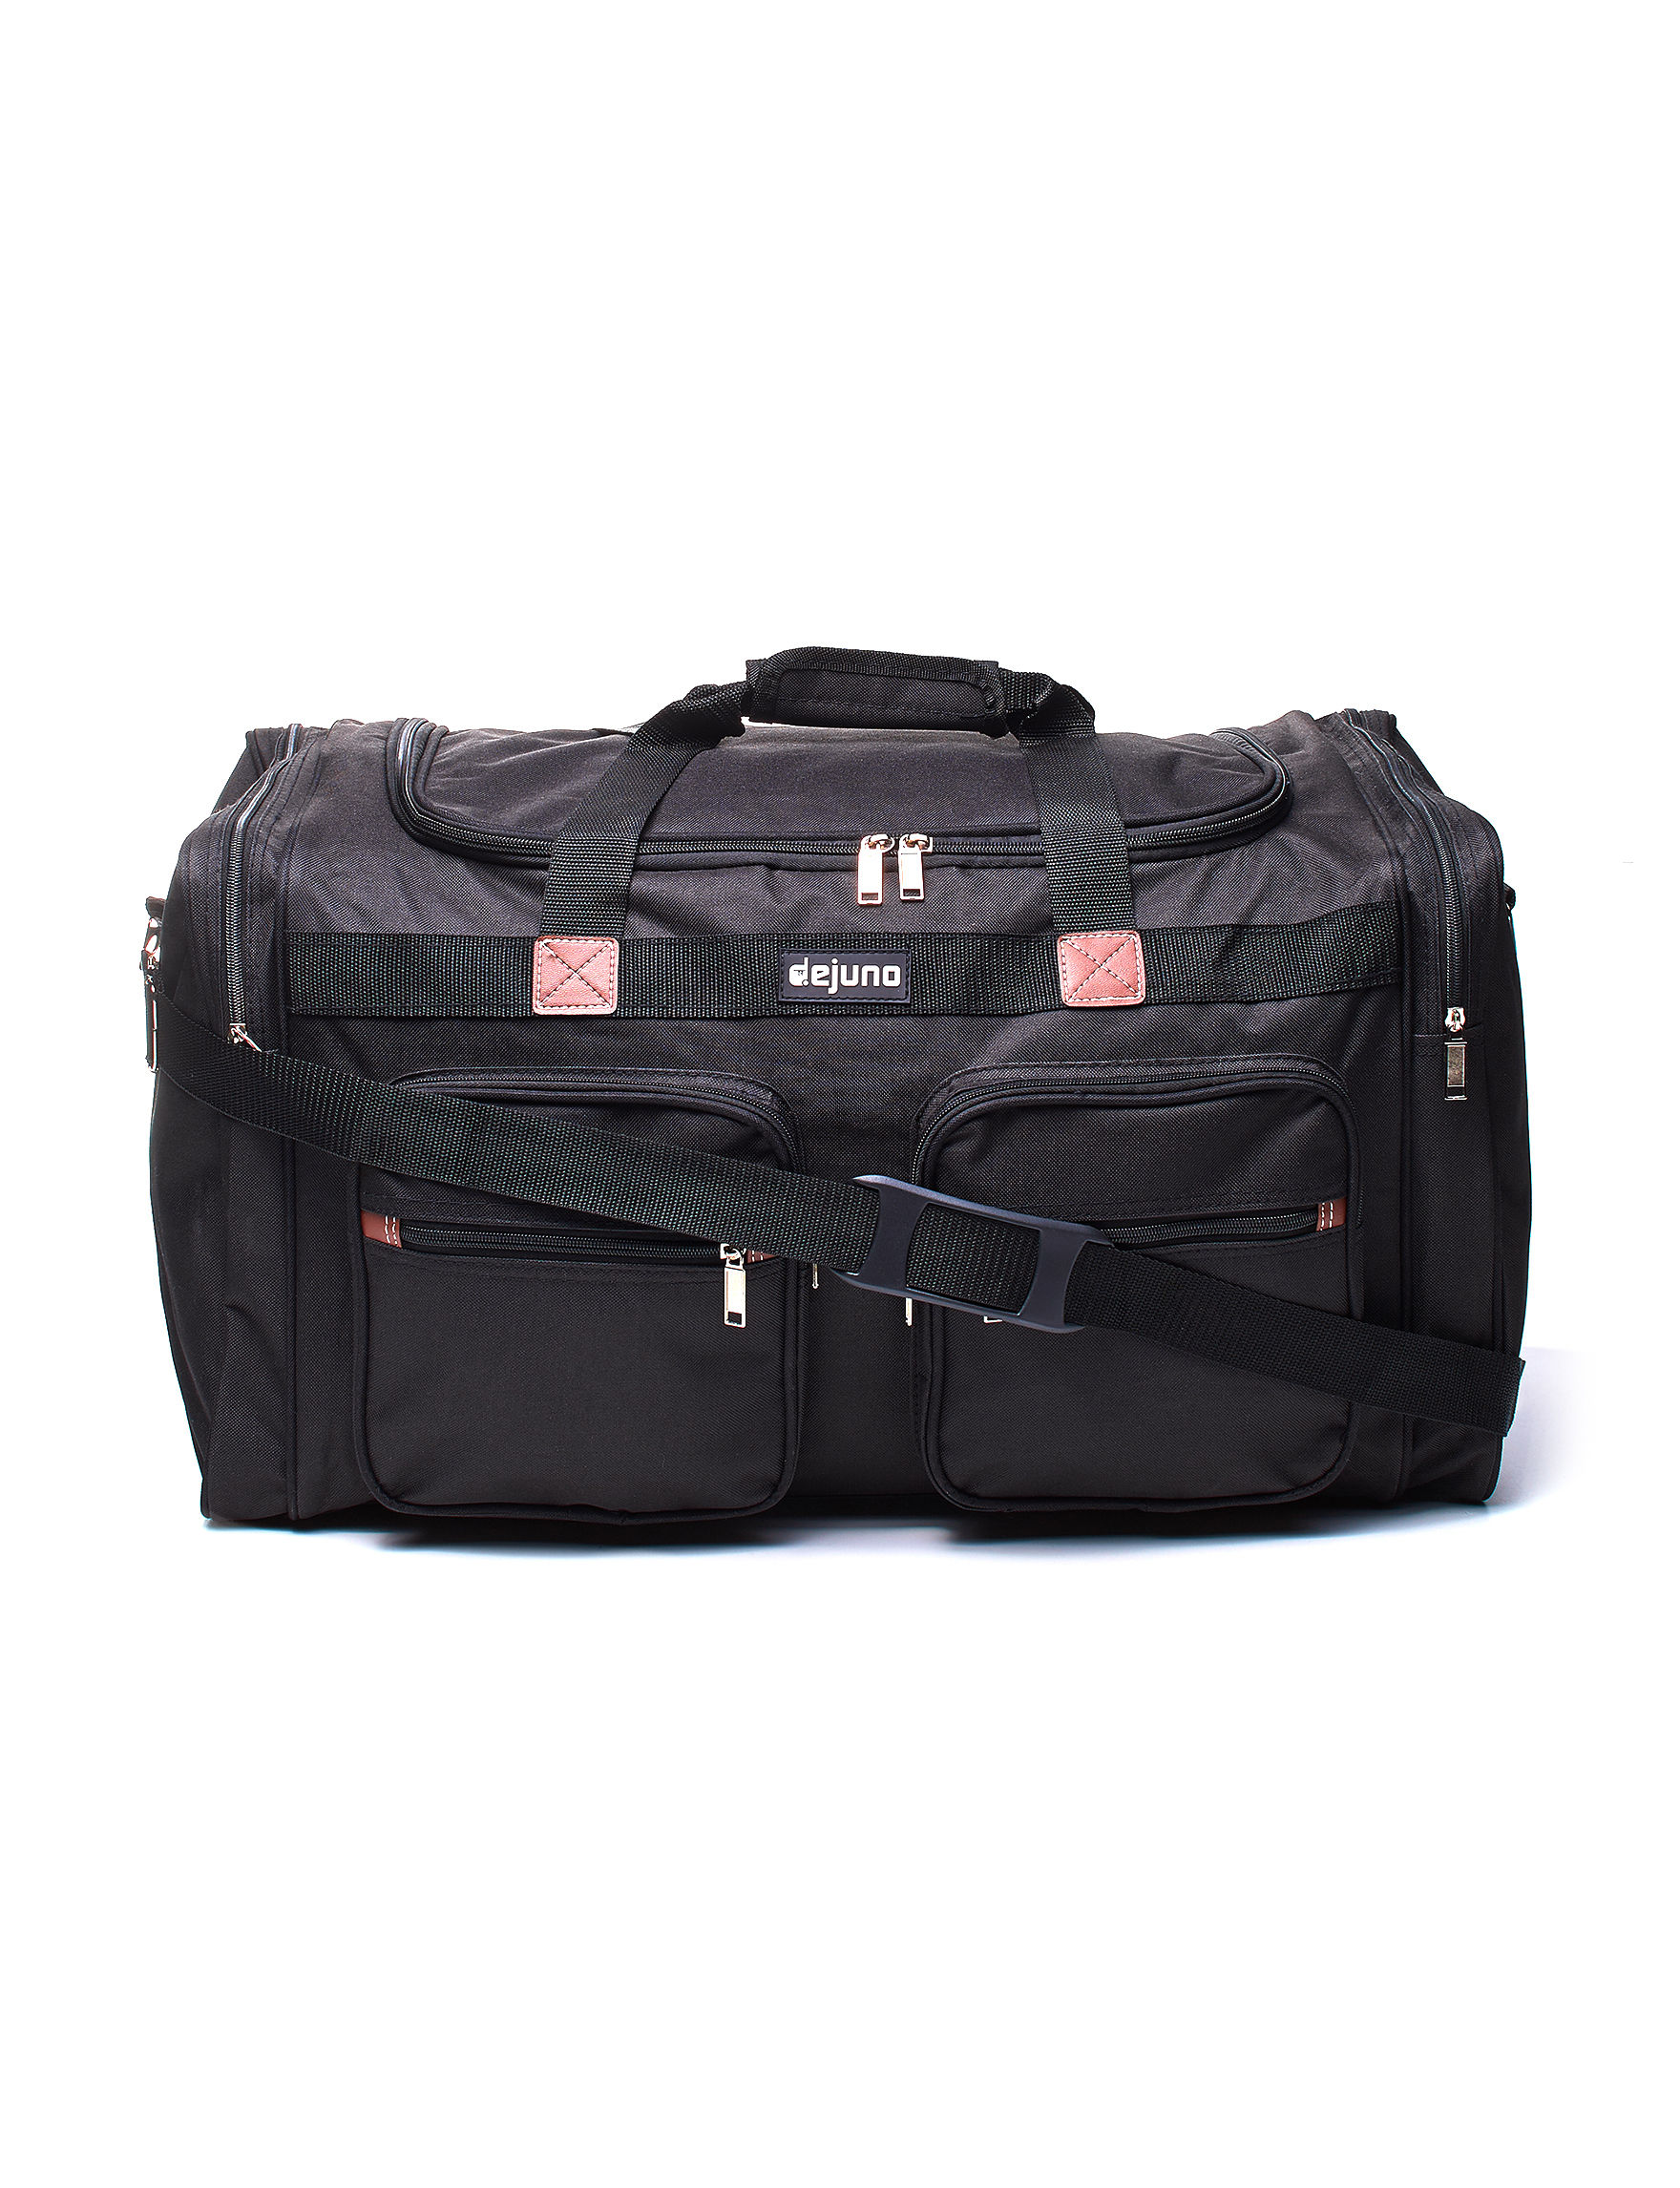 Dejuno Black Carry On Luggage Duffle Bags